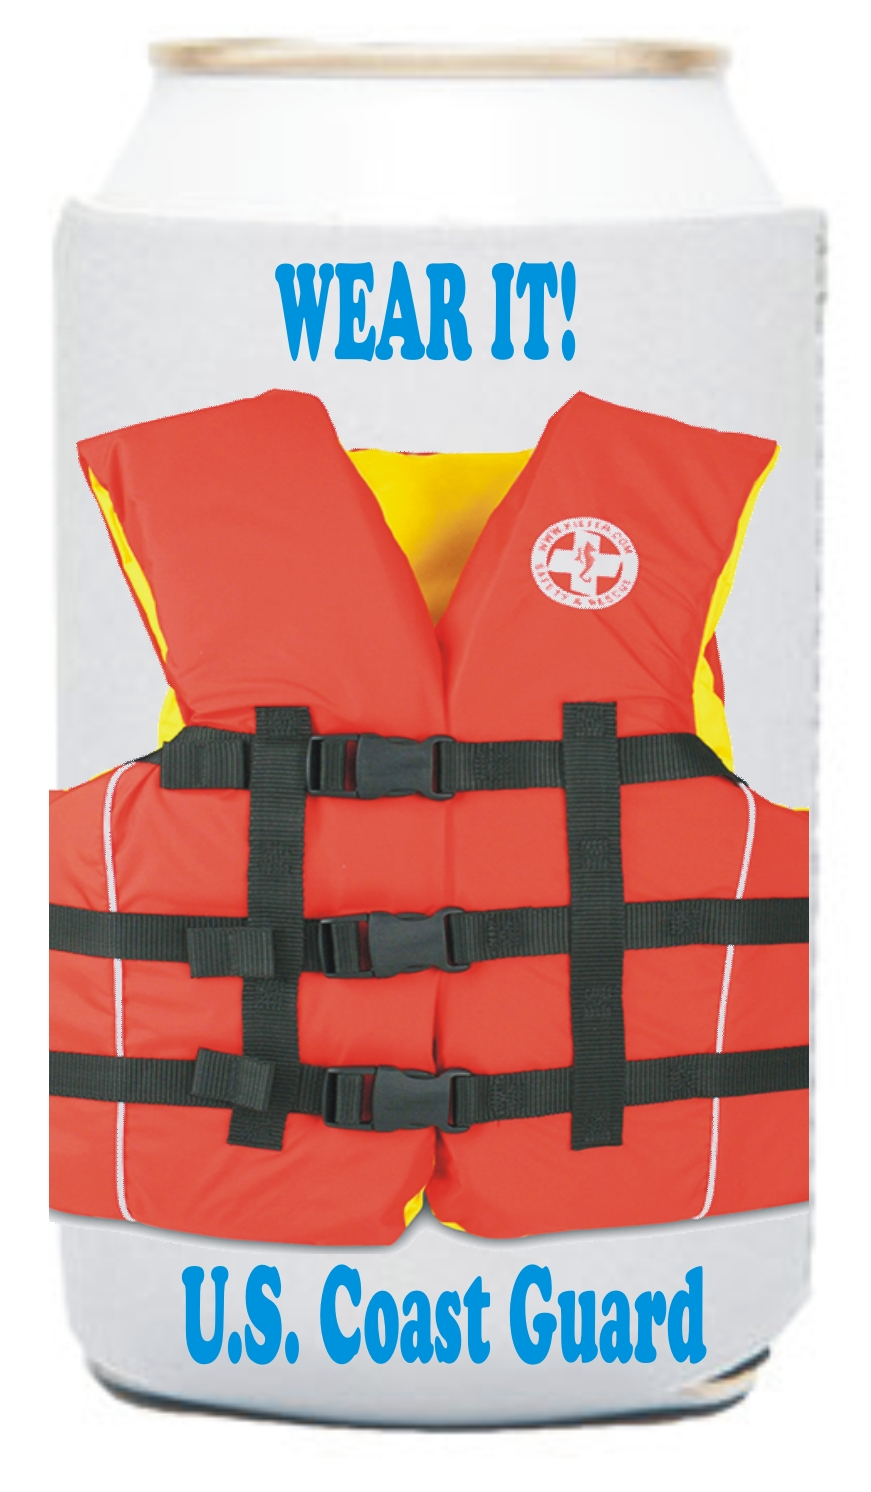 Custom Imprinted Life Jacket Vest Can Coolers!